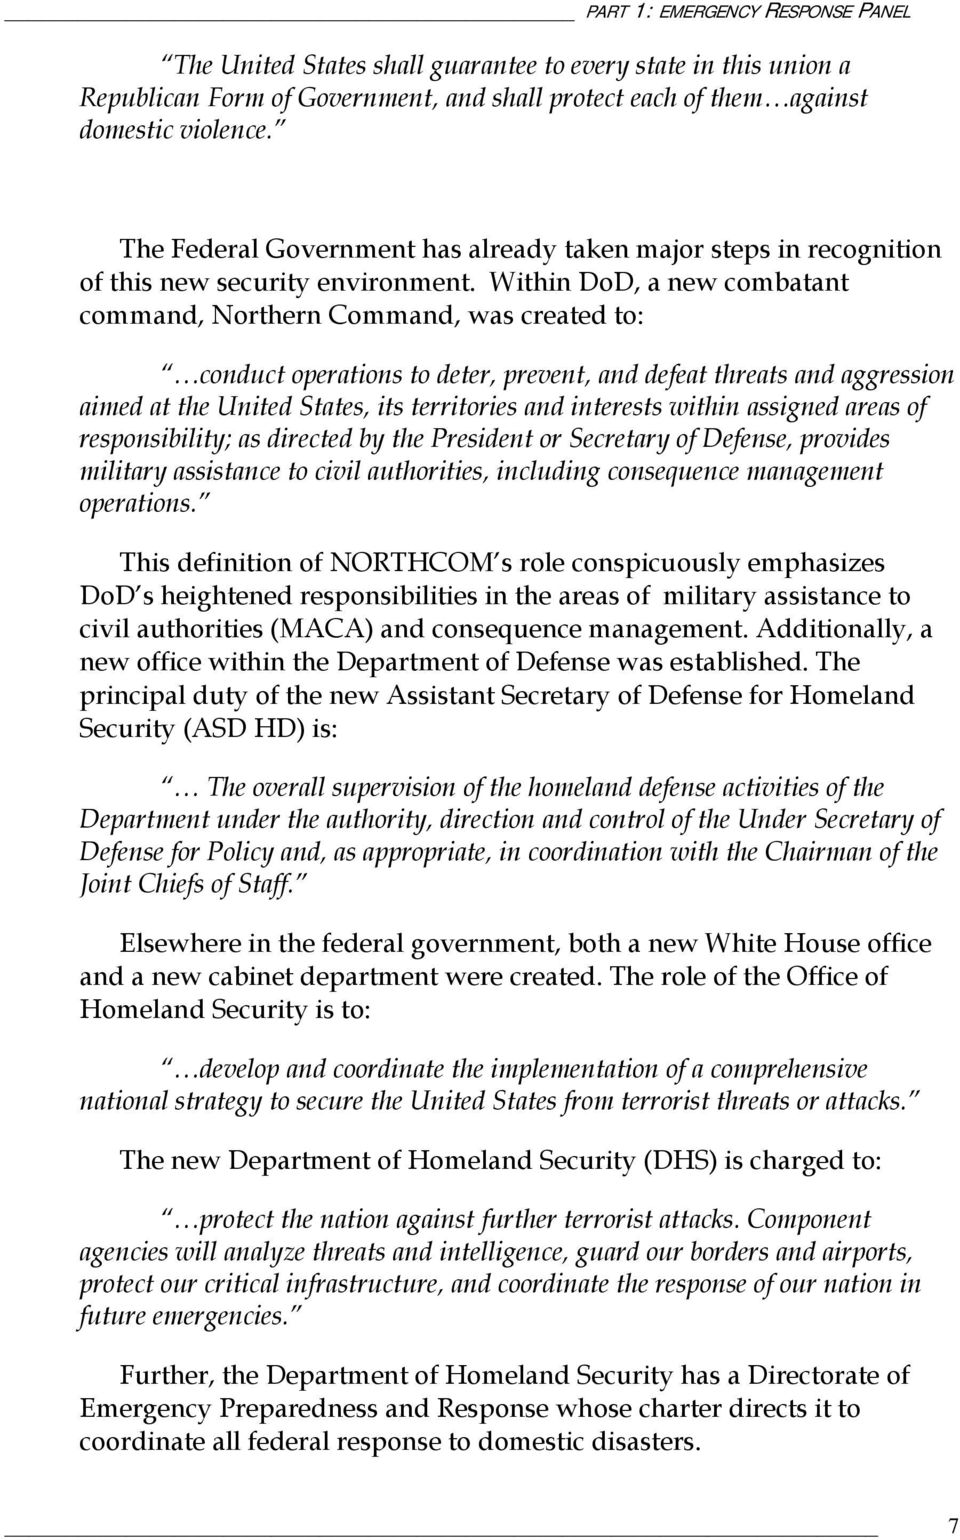 Within DoD, a new combatant command, Northern Command, was created to: conduct operations to deter, prevent, and defeat threats and aggression aimed at the United States, its territories and